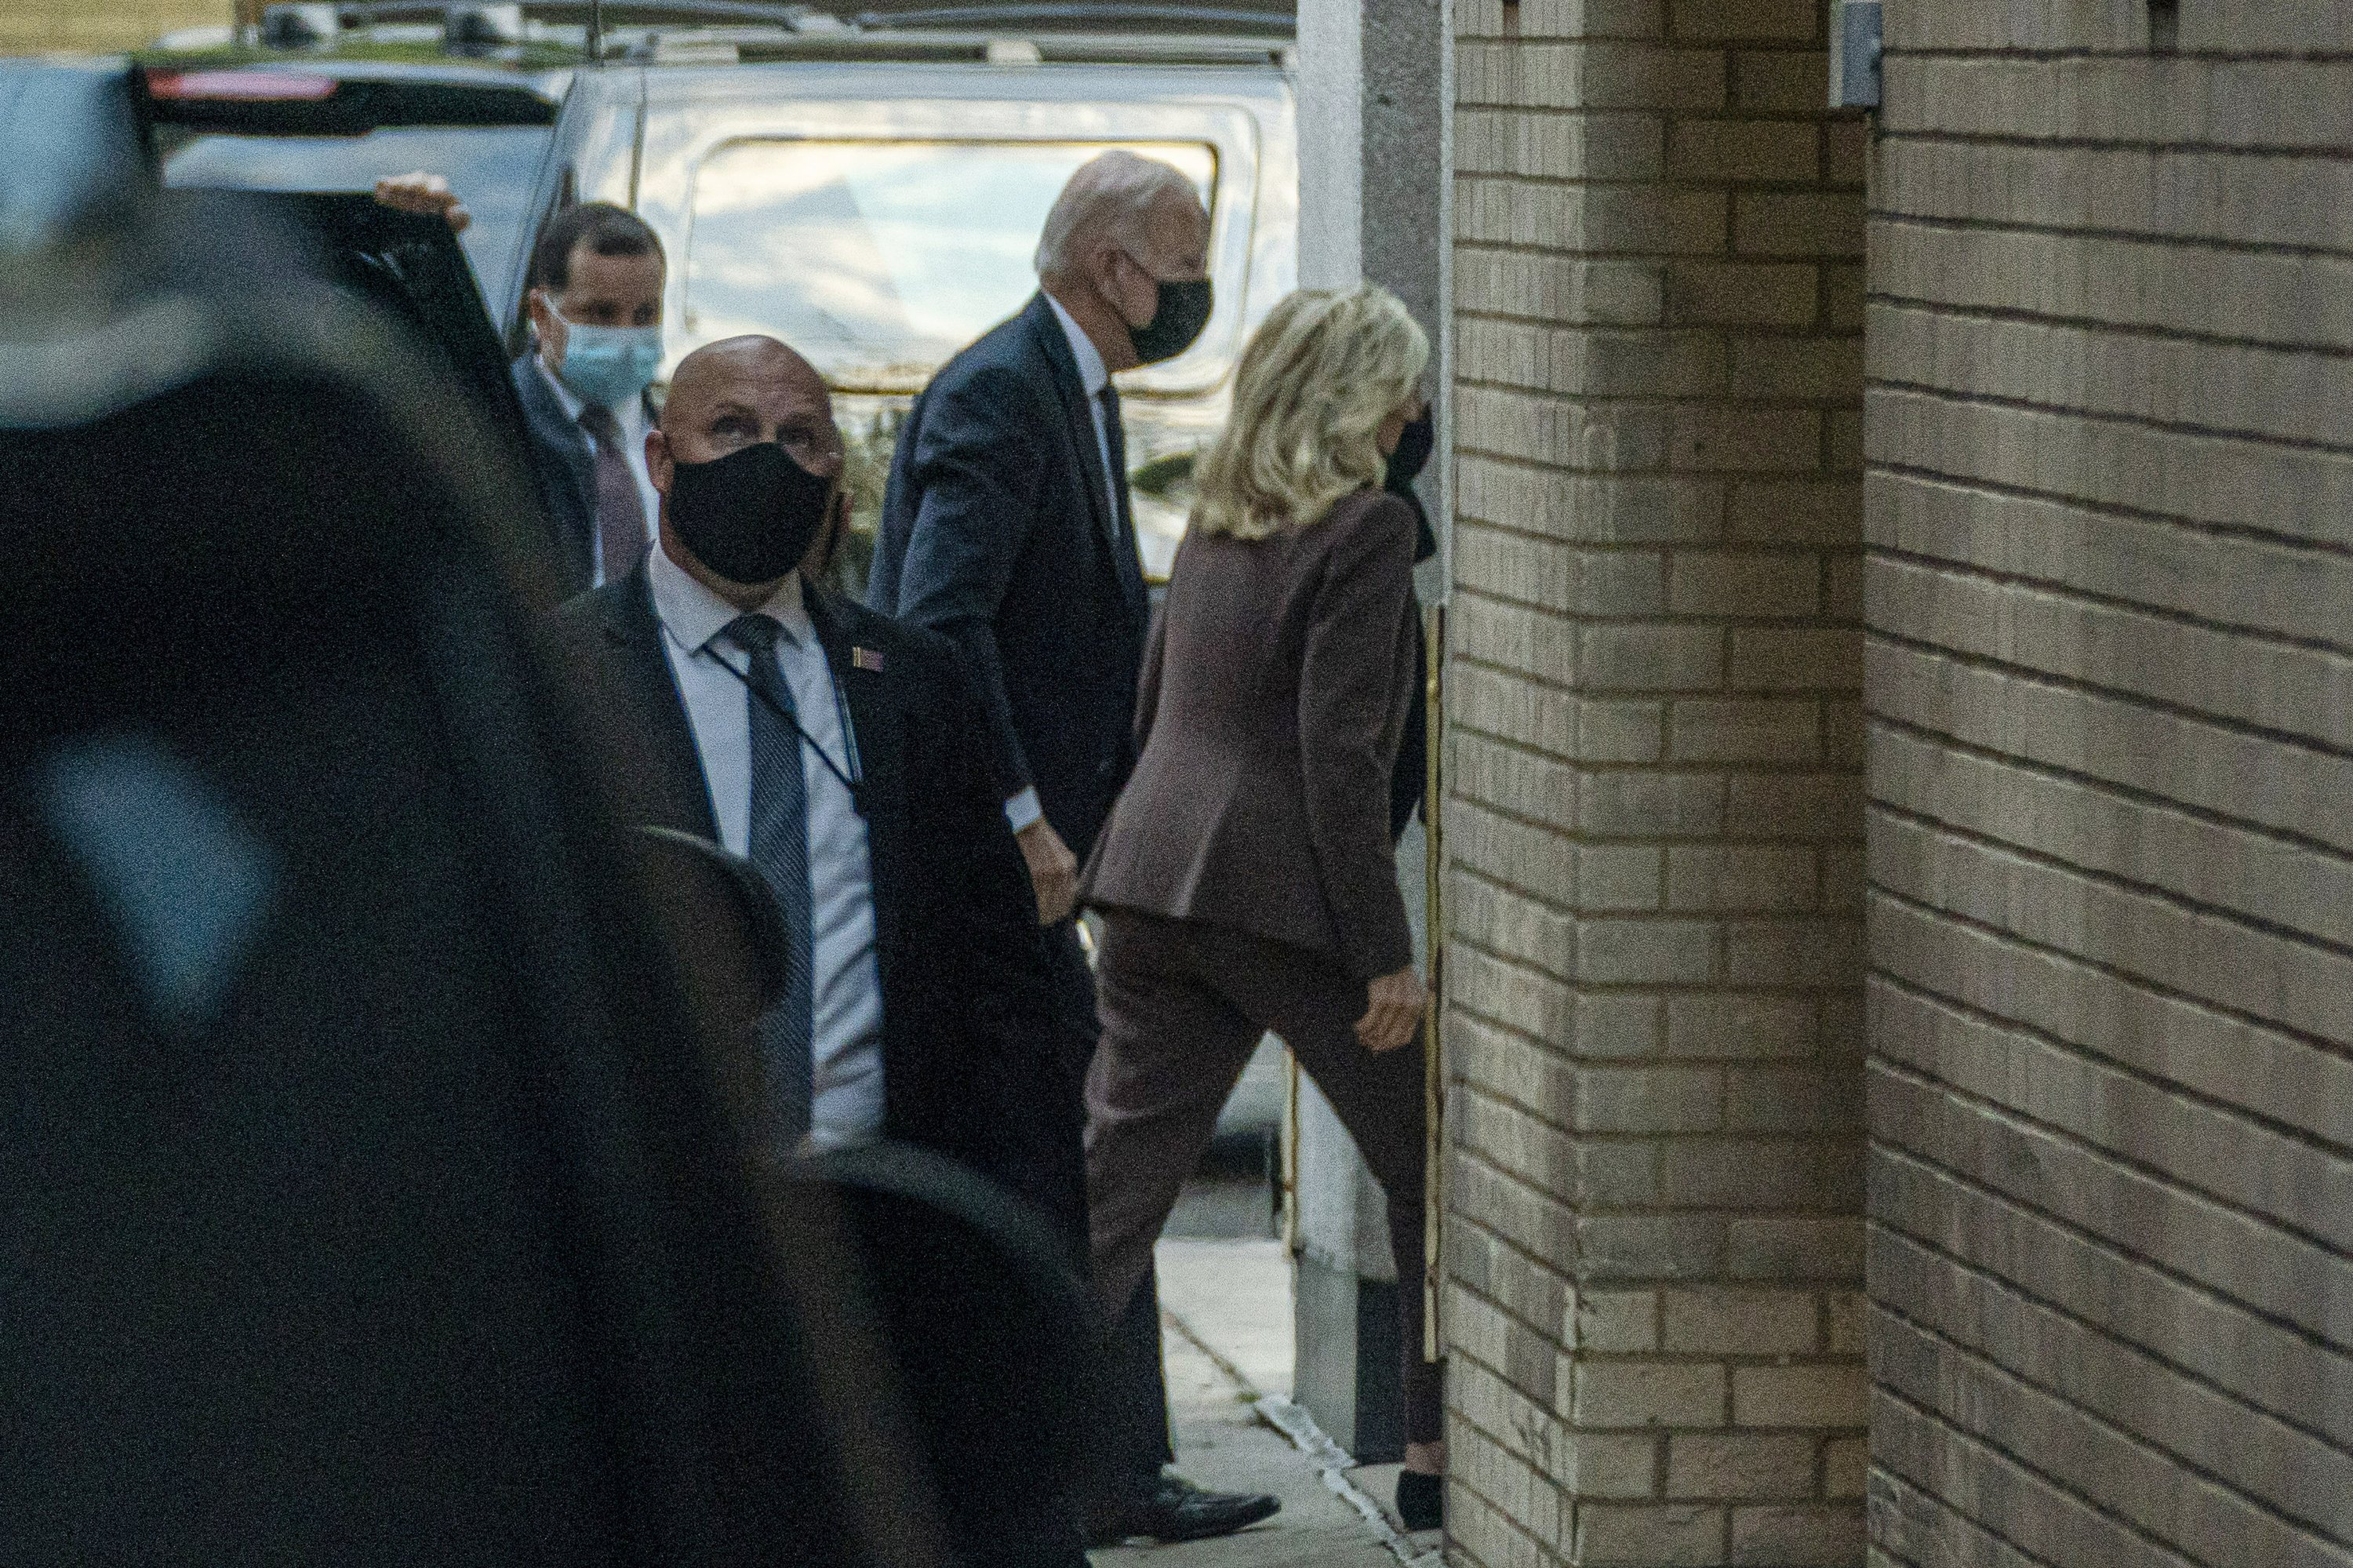 White House: Jill Biden arrives for medical 'procedure'